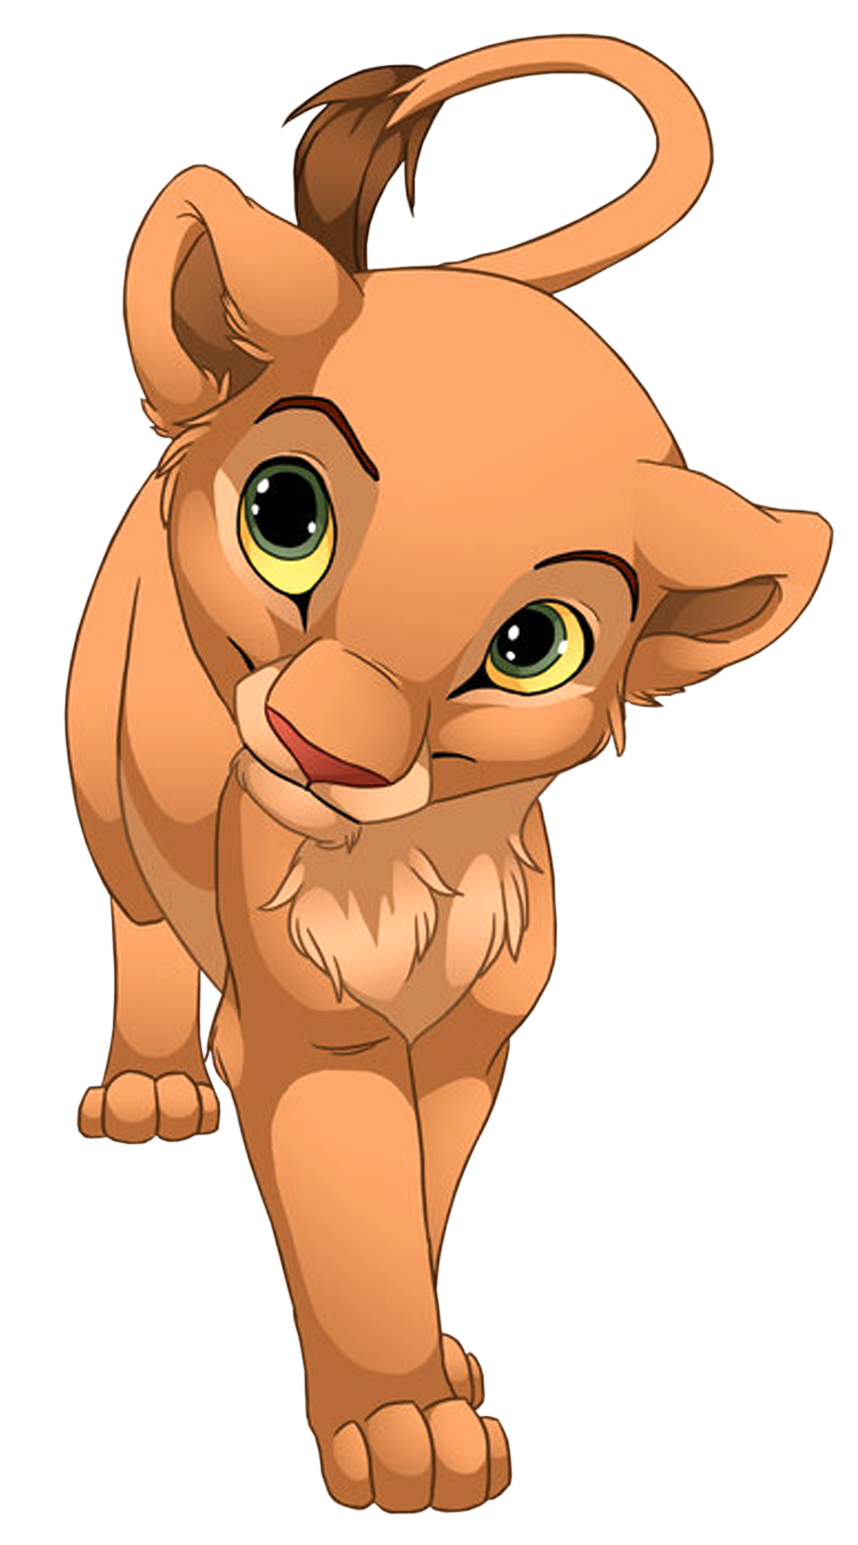 The Lion King Tigres Png Image Lion King Drawings Disney Anime Style Disney Drawings